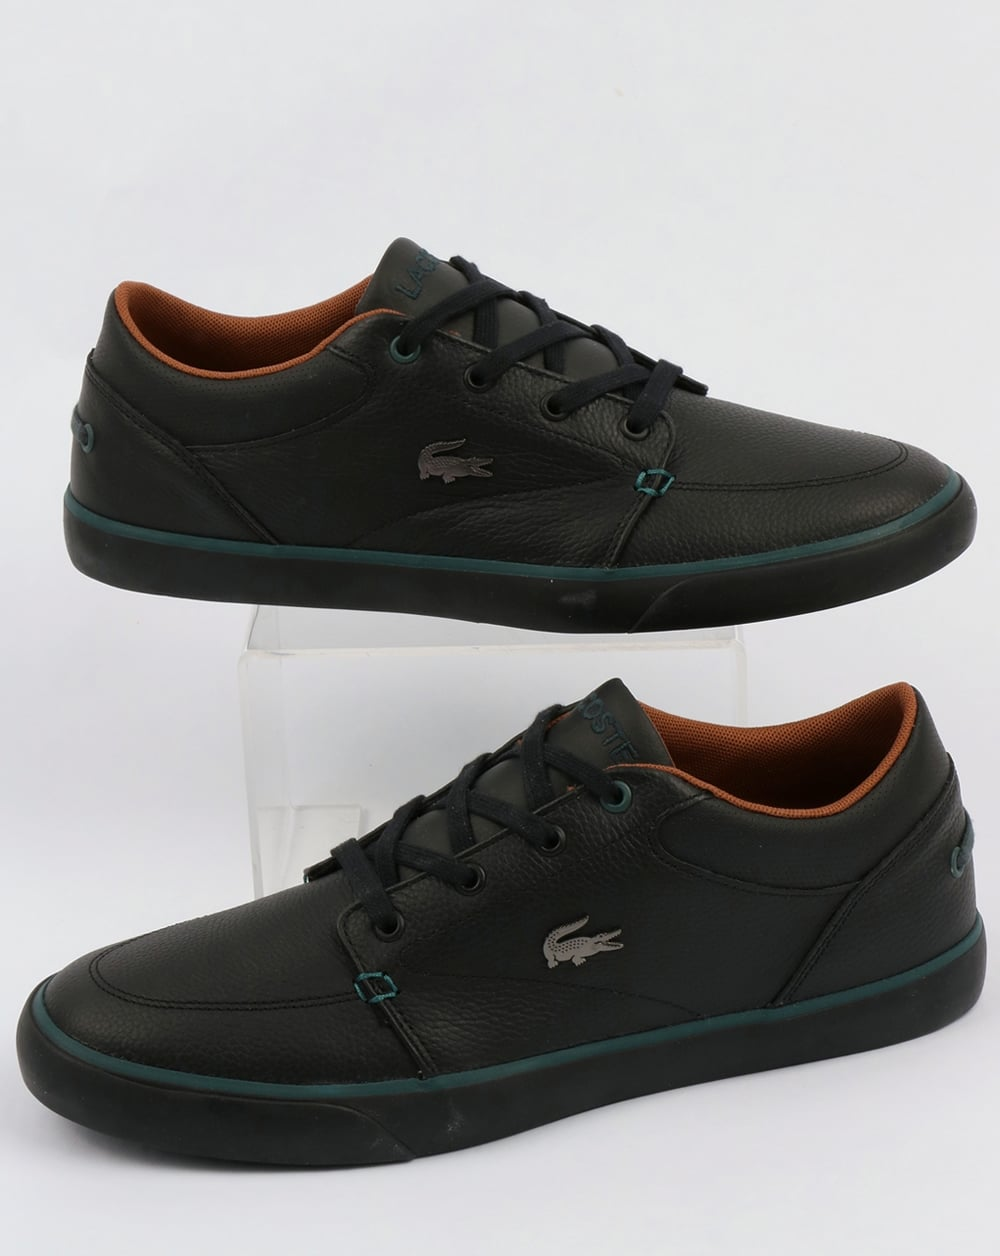 f06a4ac5a05fb3 Lacoste Lacoste Footwear Bayliss Leather Trainers Black